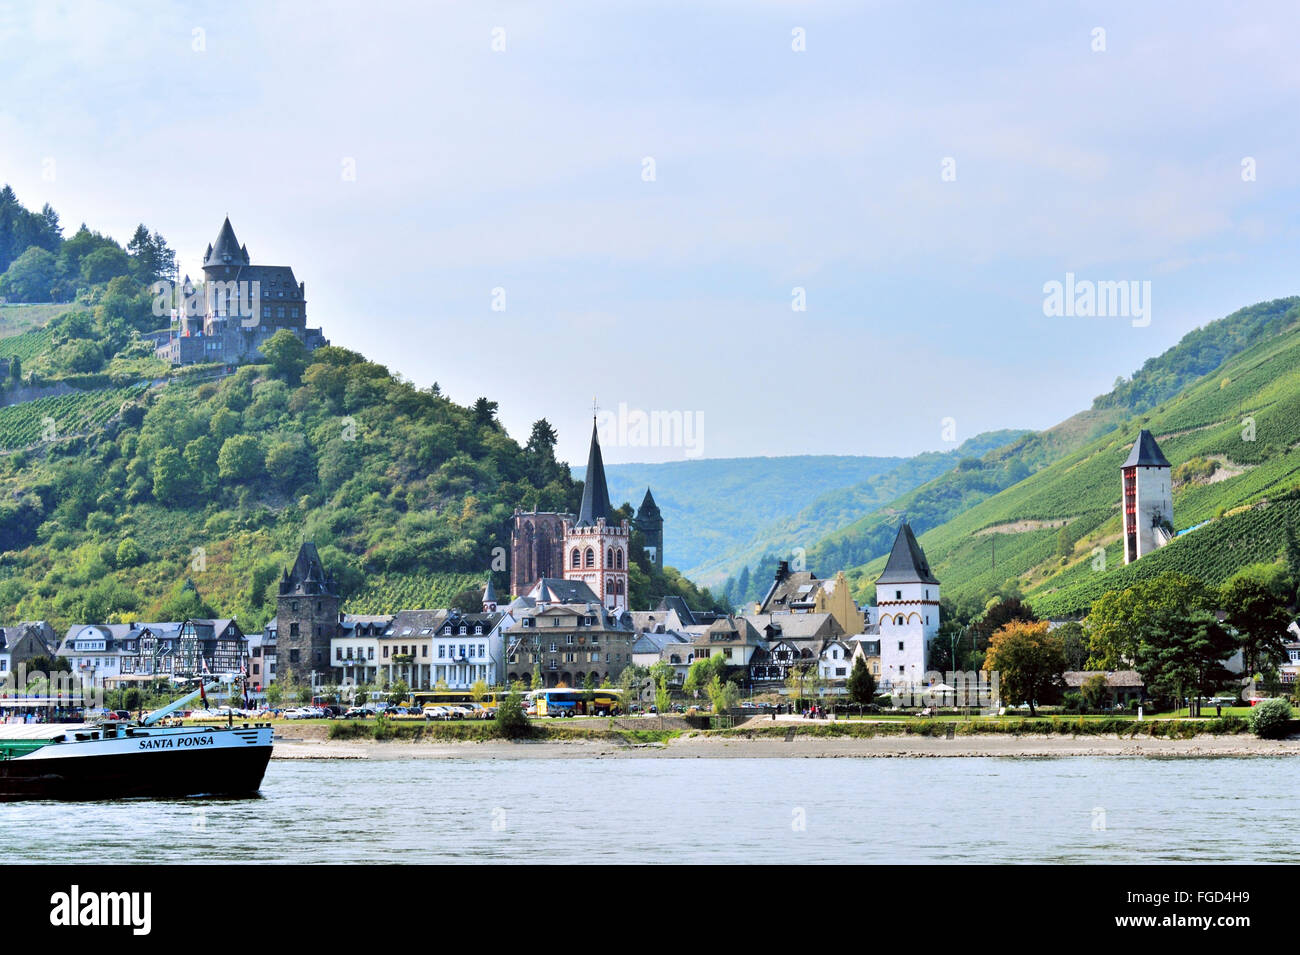 Town Bacharach in the Middle Rhine Valley and Stahleck Castle, Upper Middle Rhine Valley, Germany Stock Photo